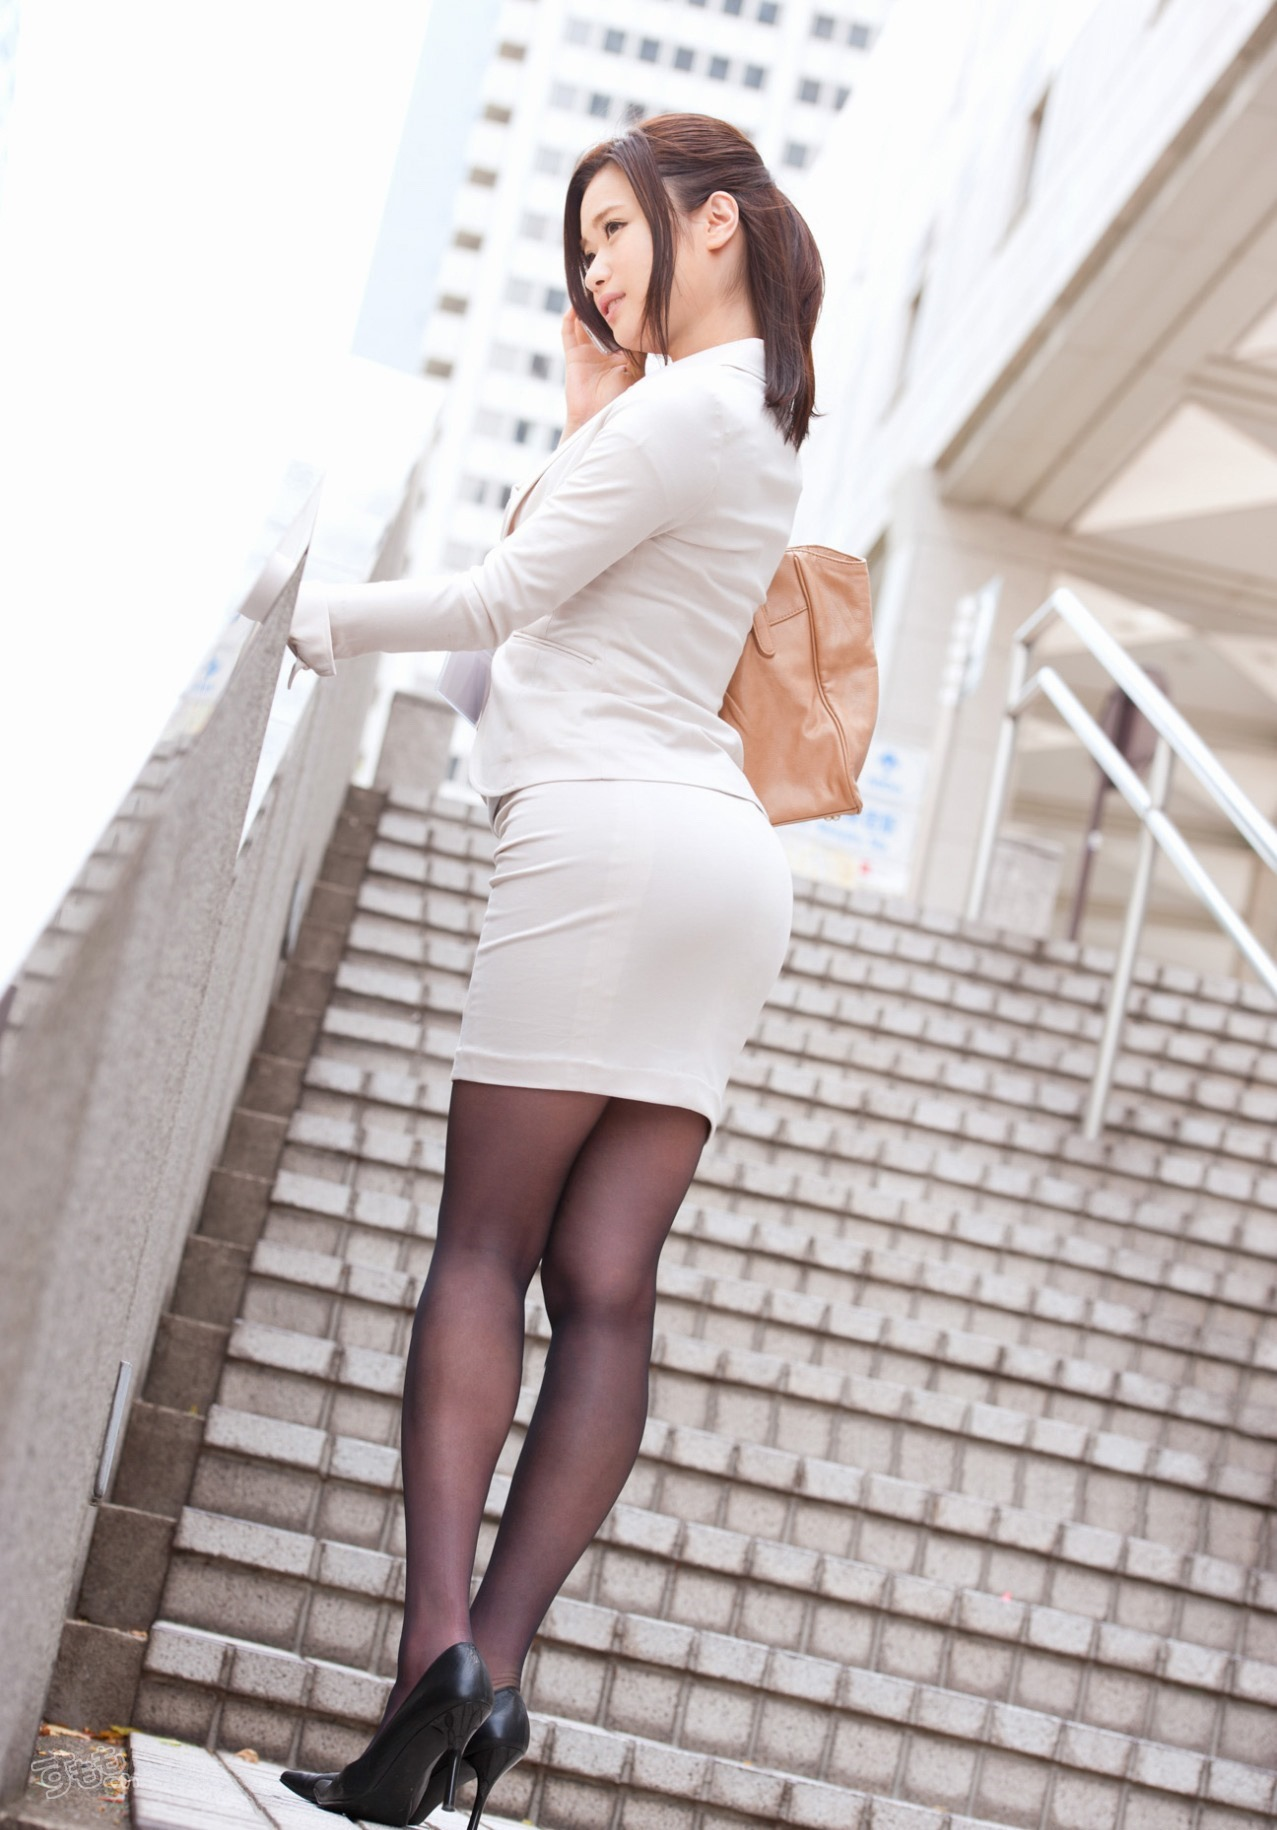 tight_skirt_5748-109